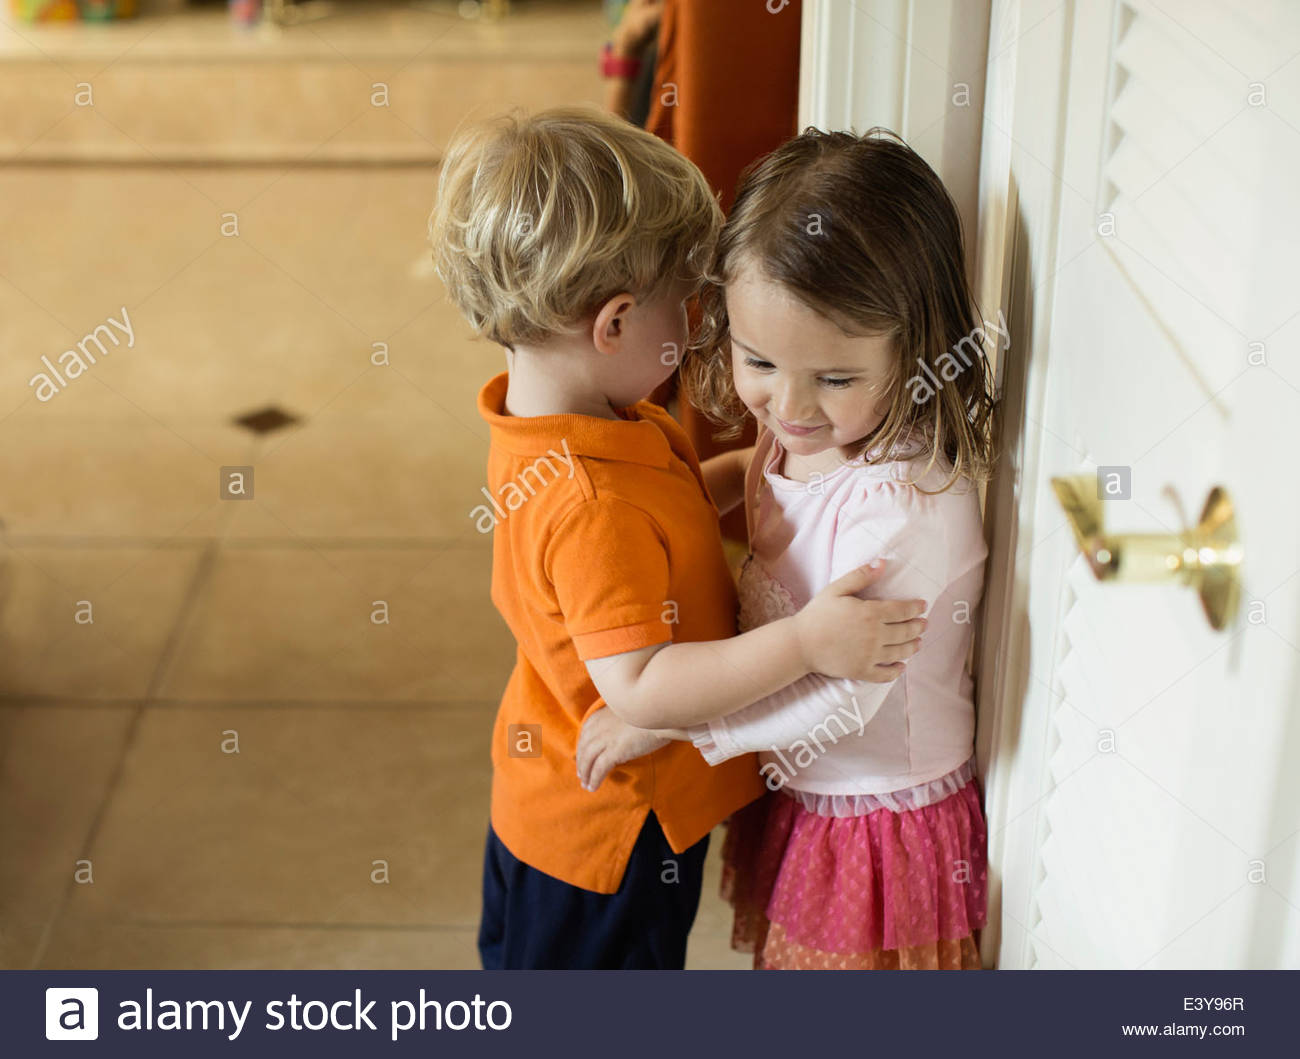 Male and female toddler friends with arms around each other - Stock Image